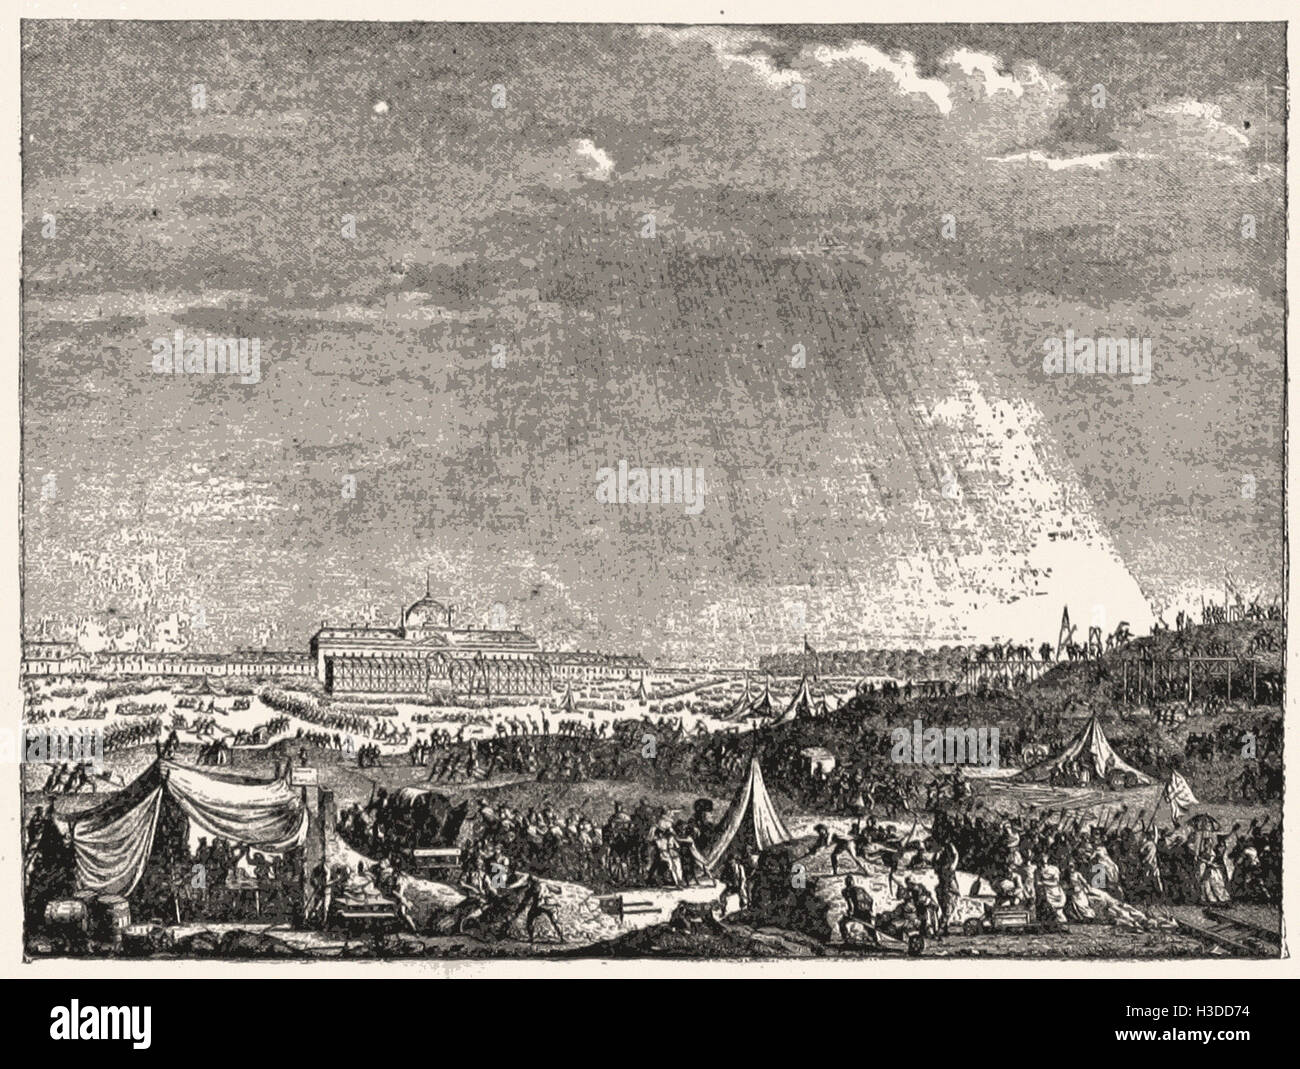 ALL CLASSES PREPARING THE CHAMP DE MARS FOR THE FEDERATION FESTIVALS AND CEREMONIES  OF JULY 14, 1790 - Stock Image